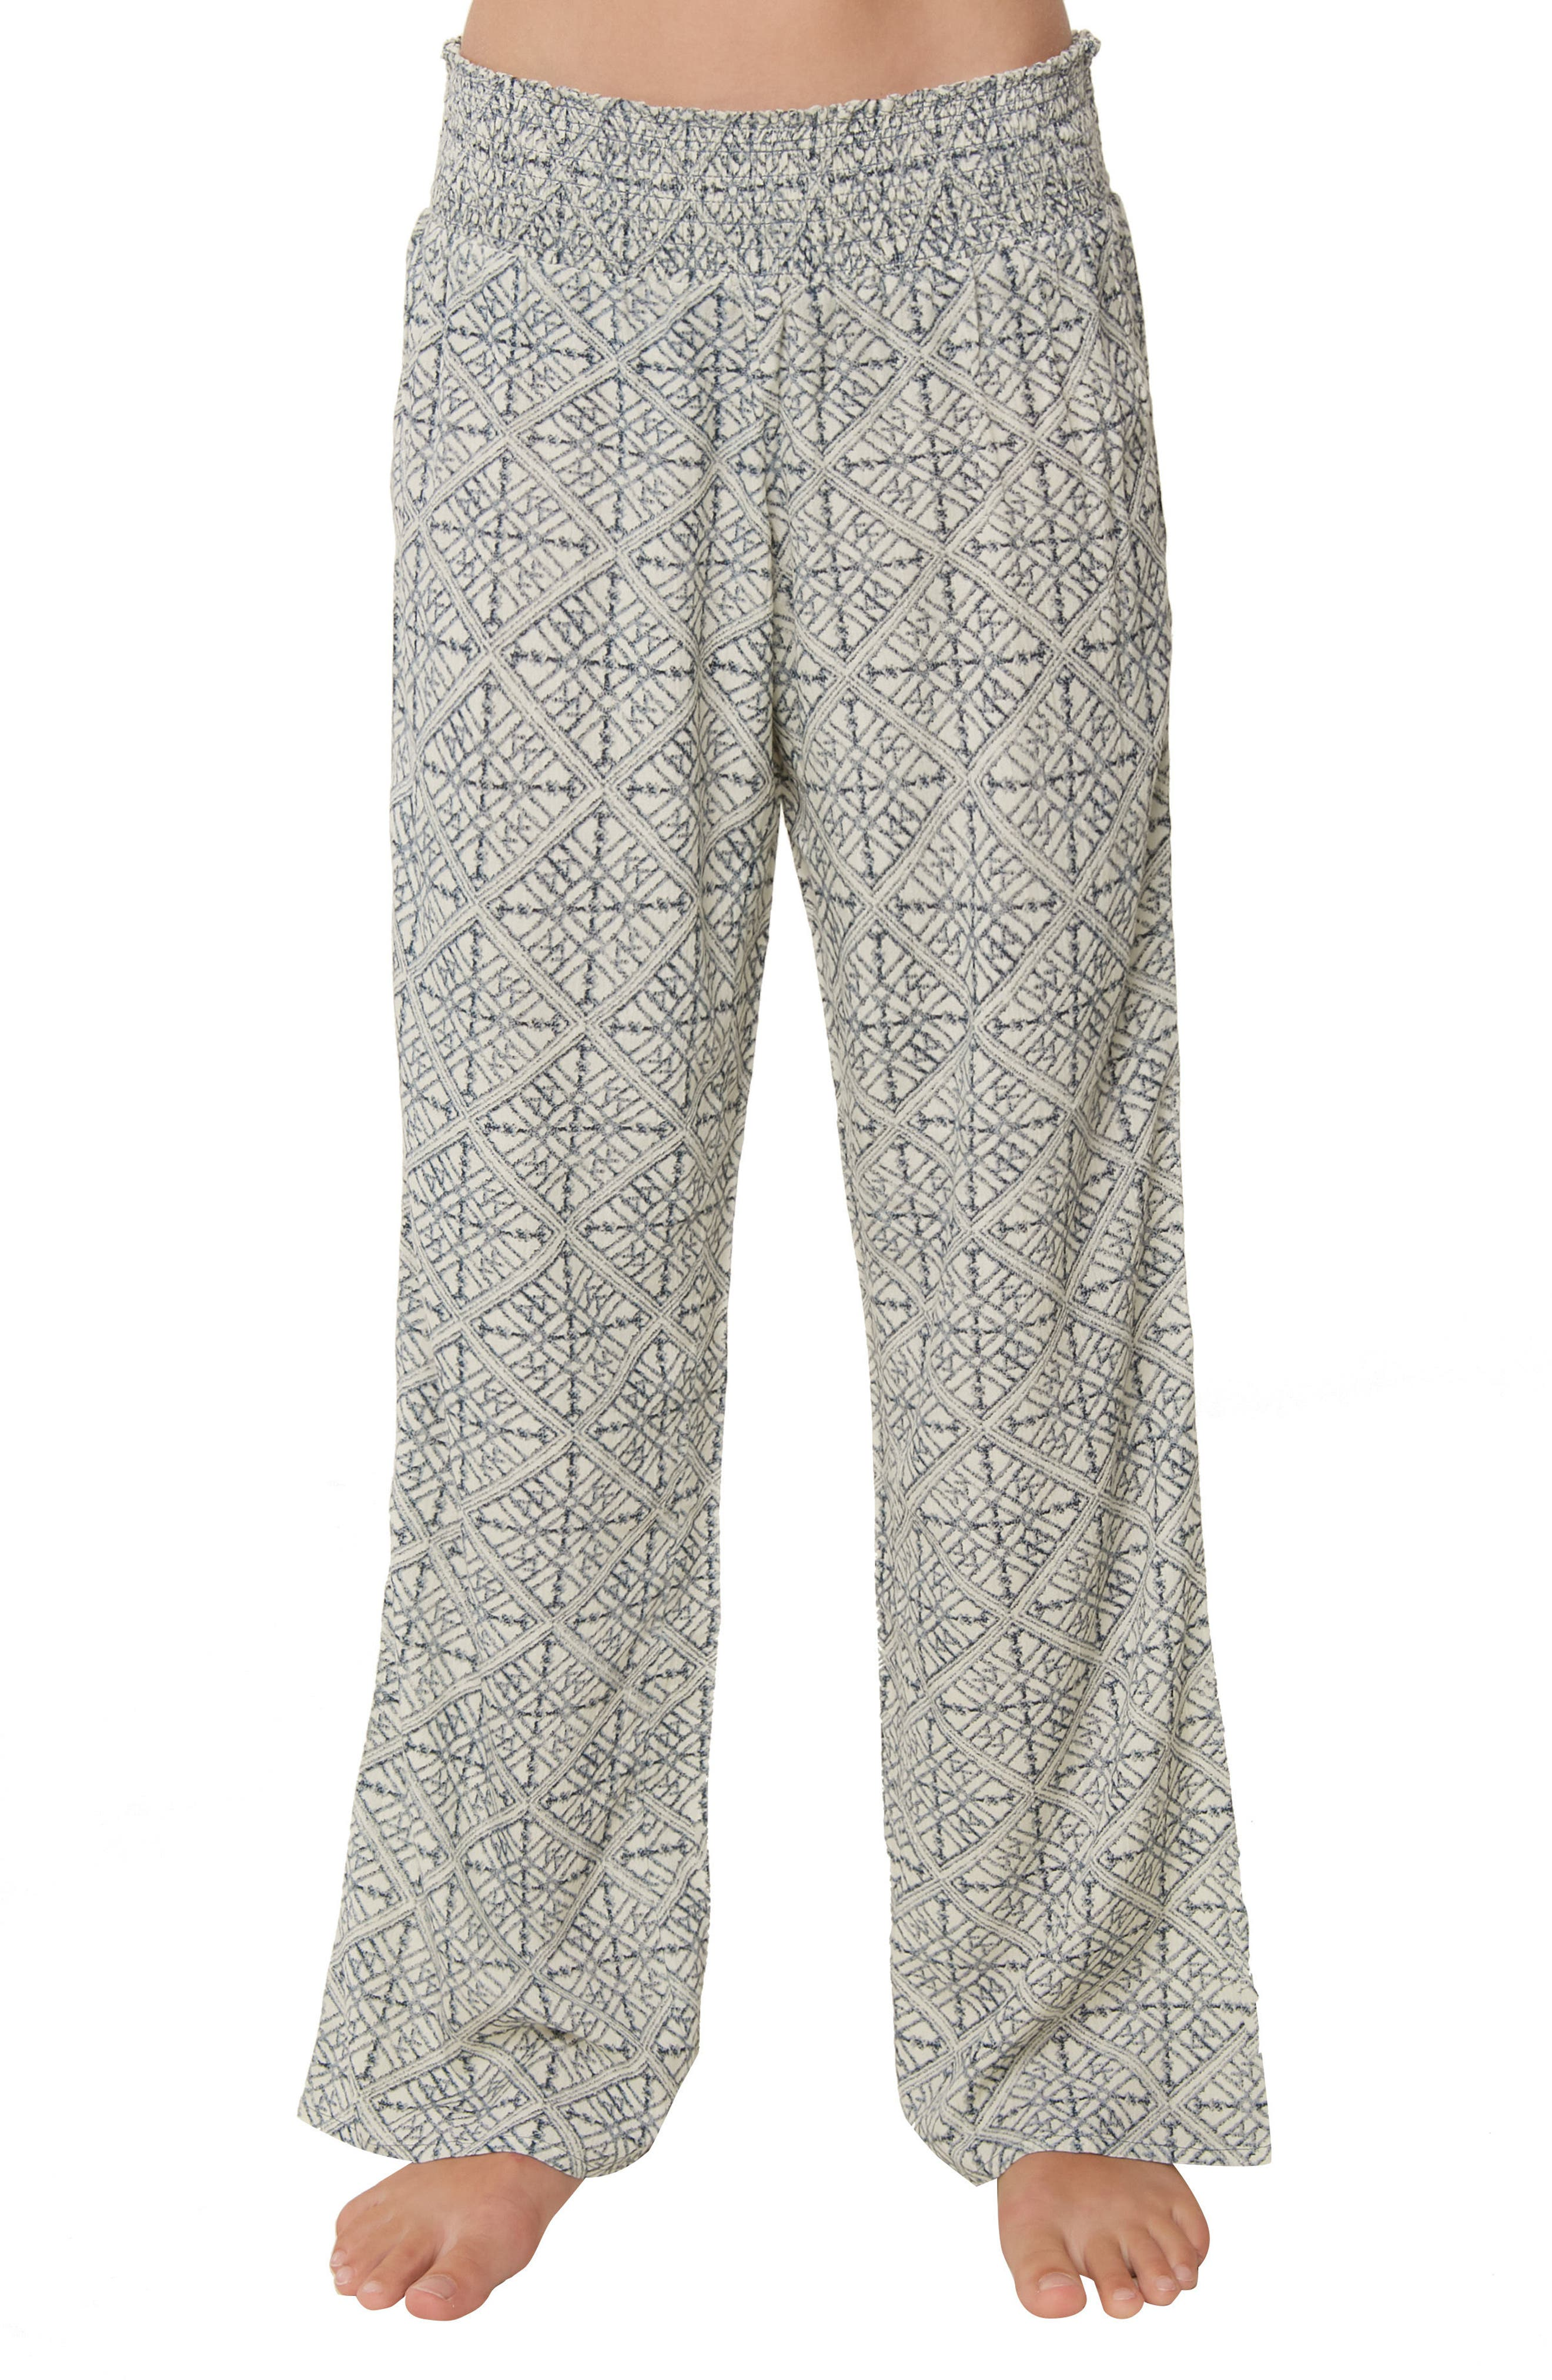 Joanna Geo Print Pants,                             Alternate thumbnail 3, color,                             EVENTIDE